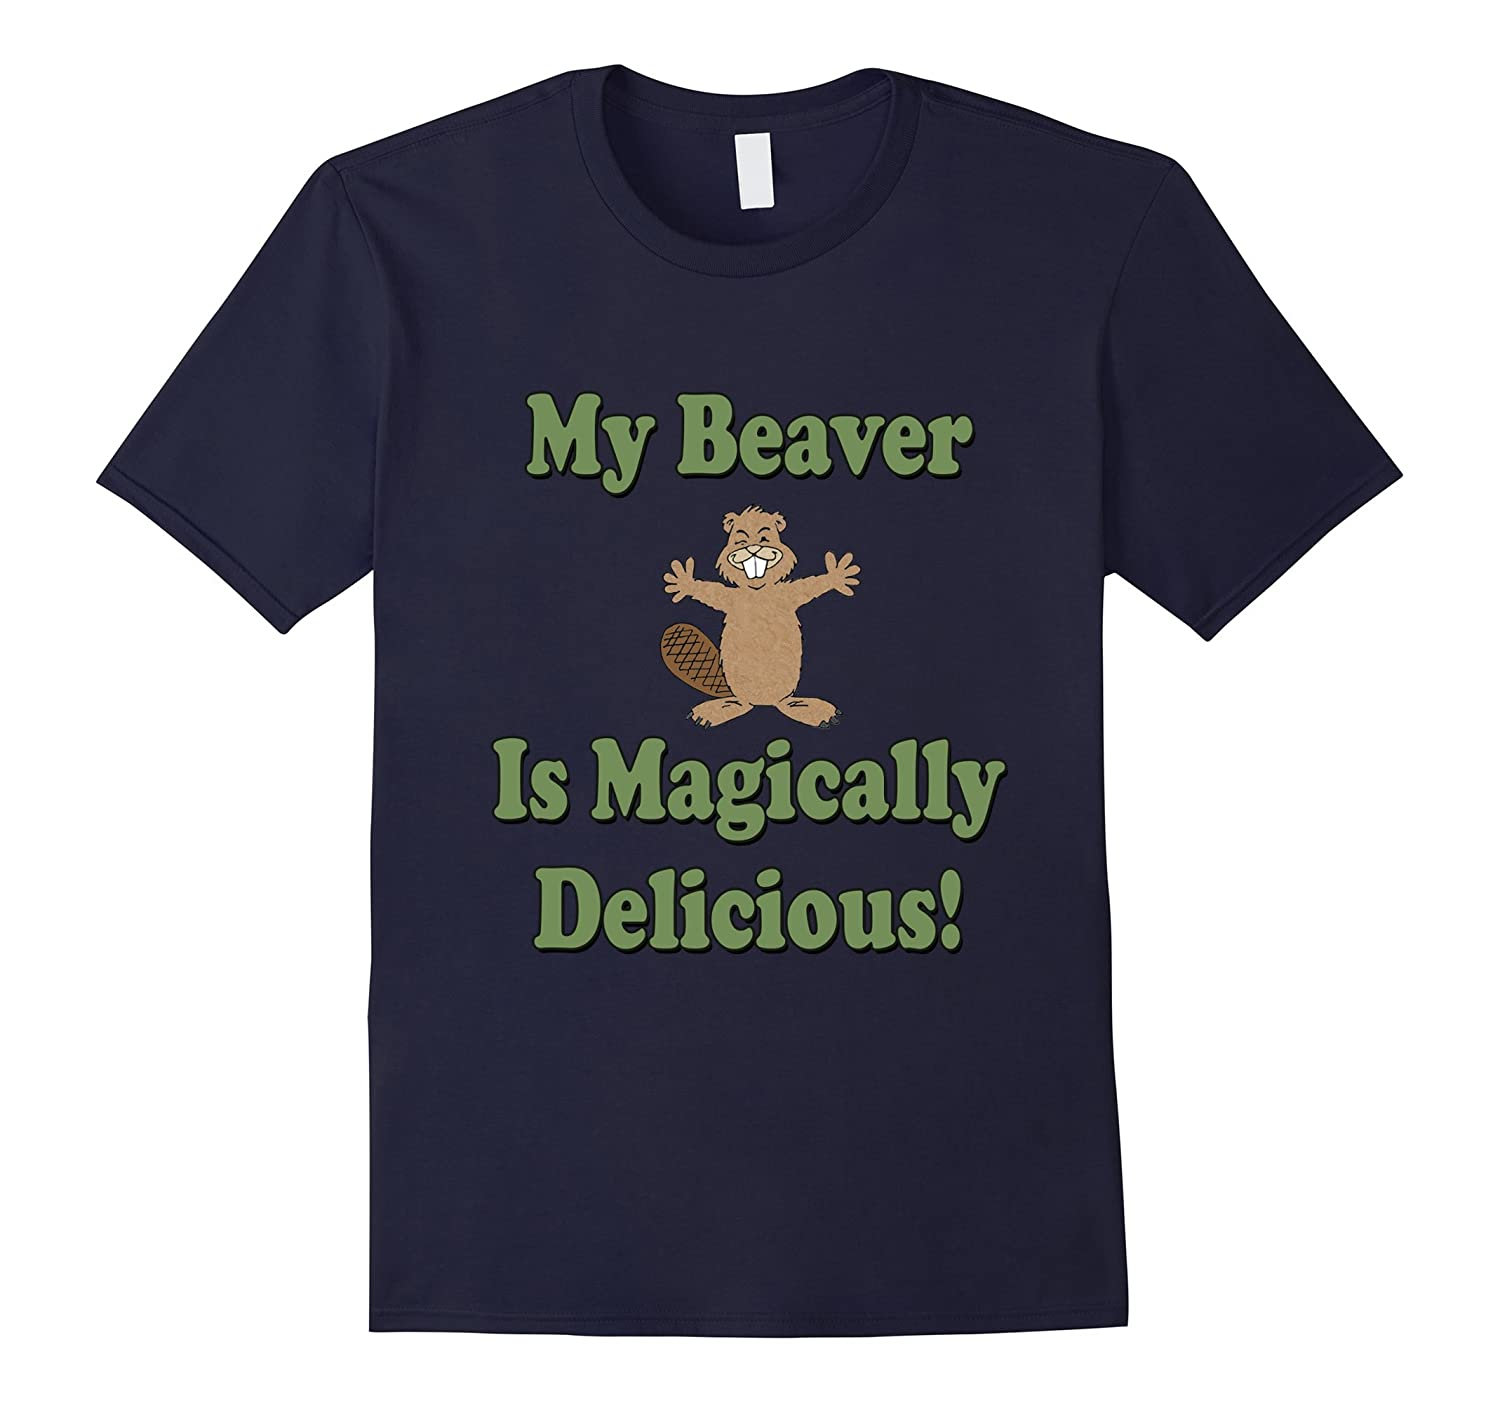 NBW My Beaver is Magically Delicious T-Shirt-TD